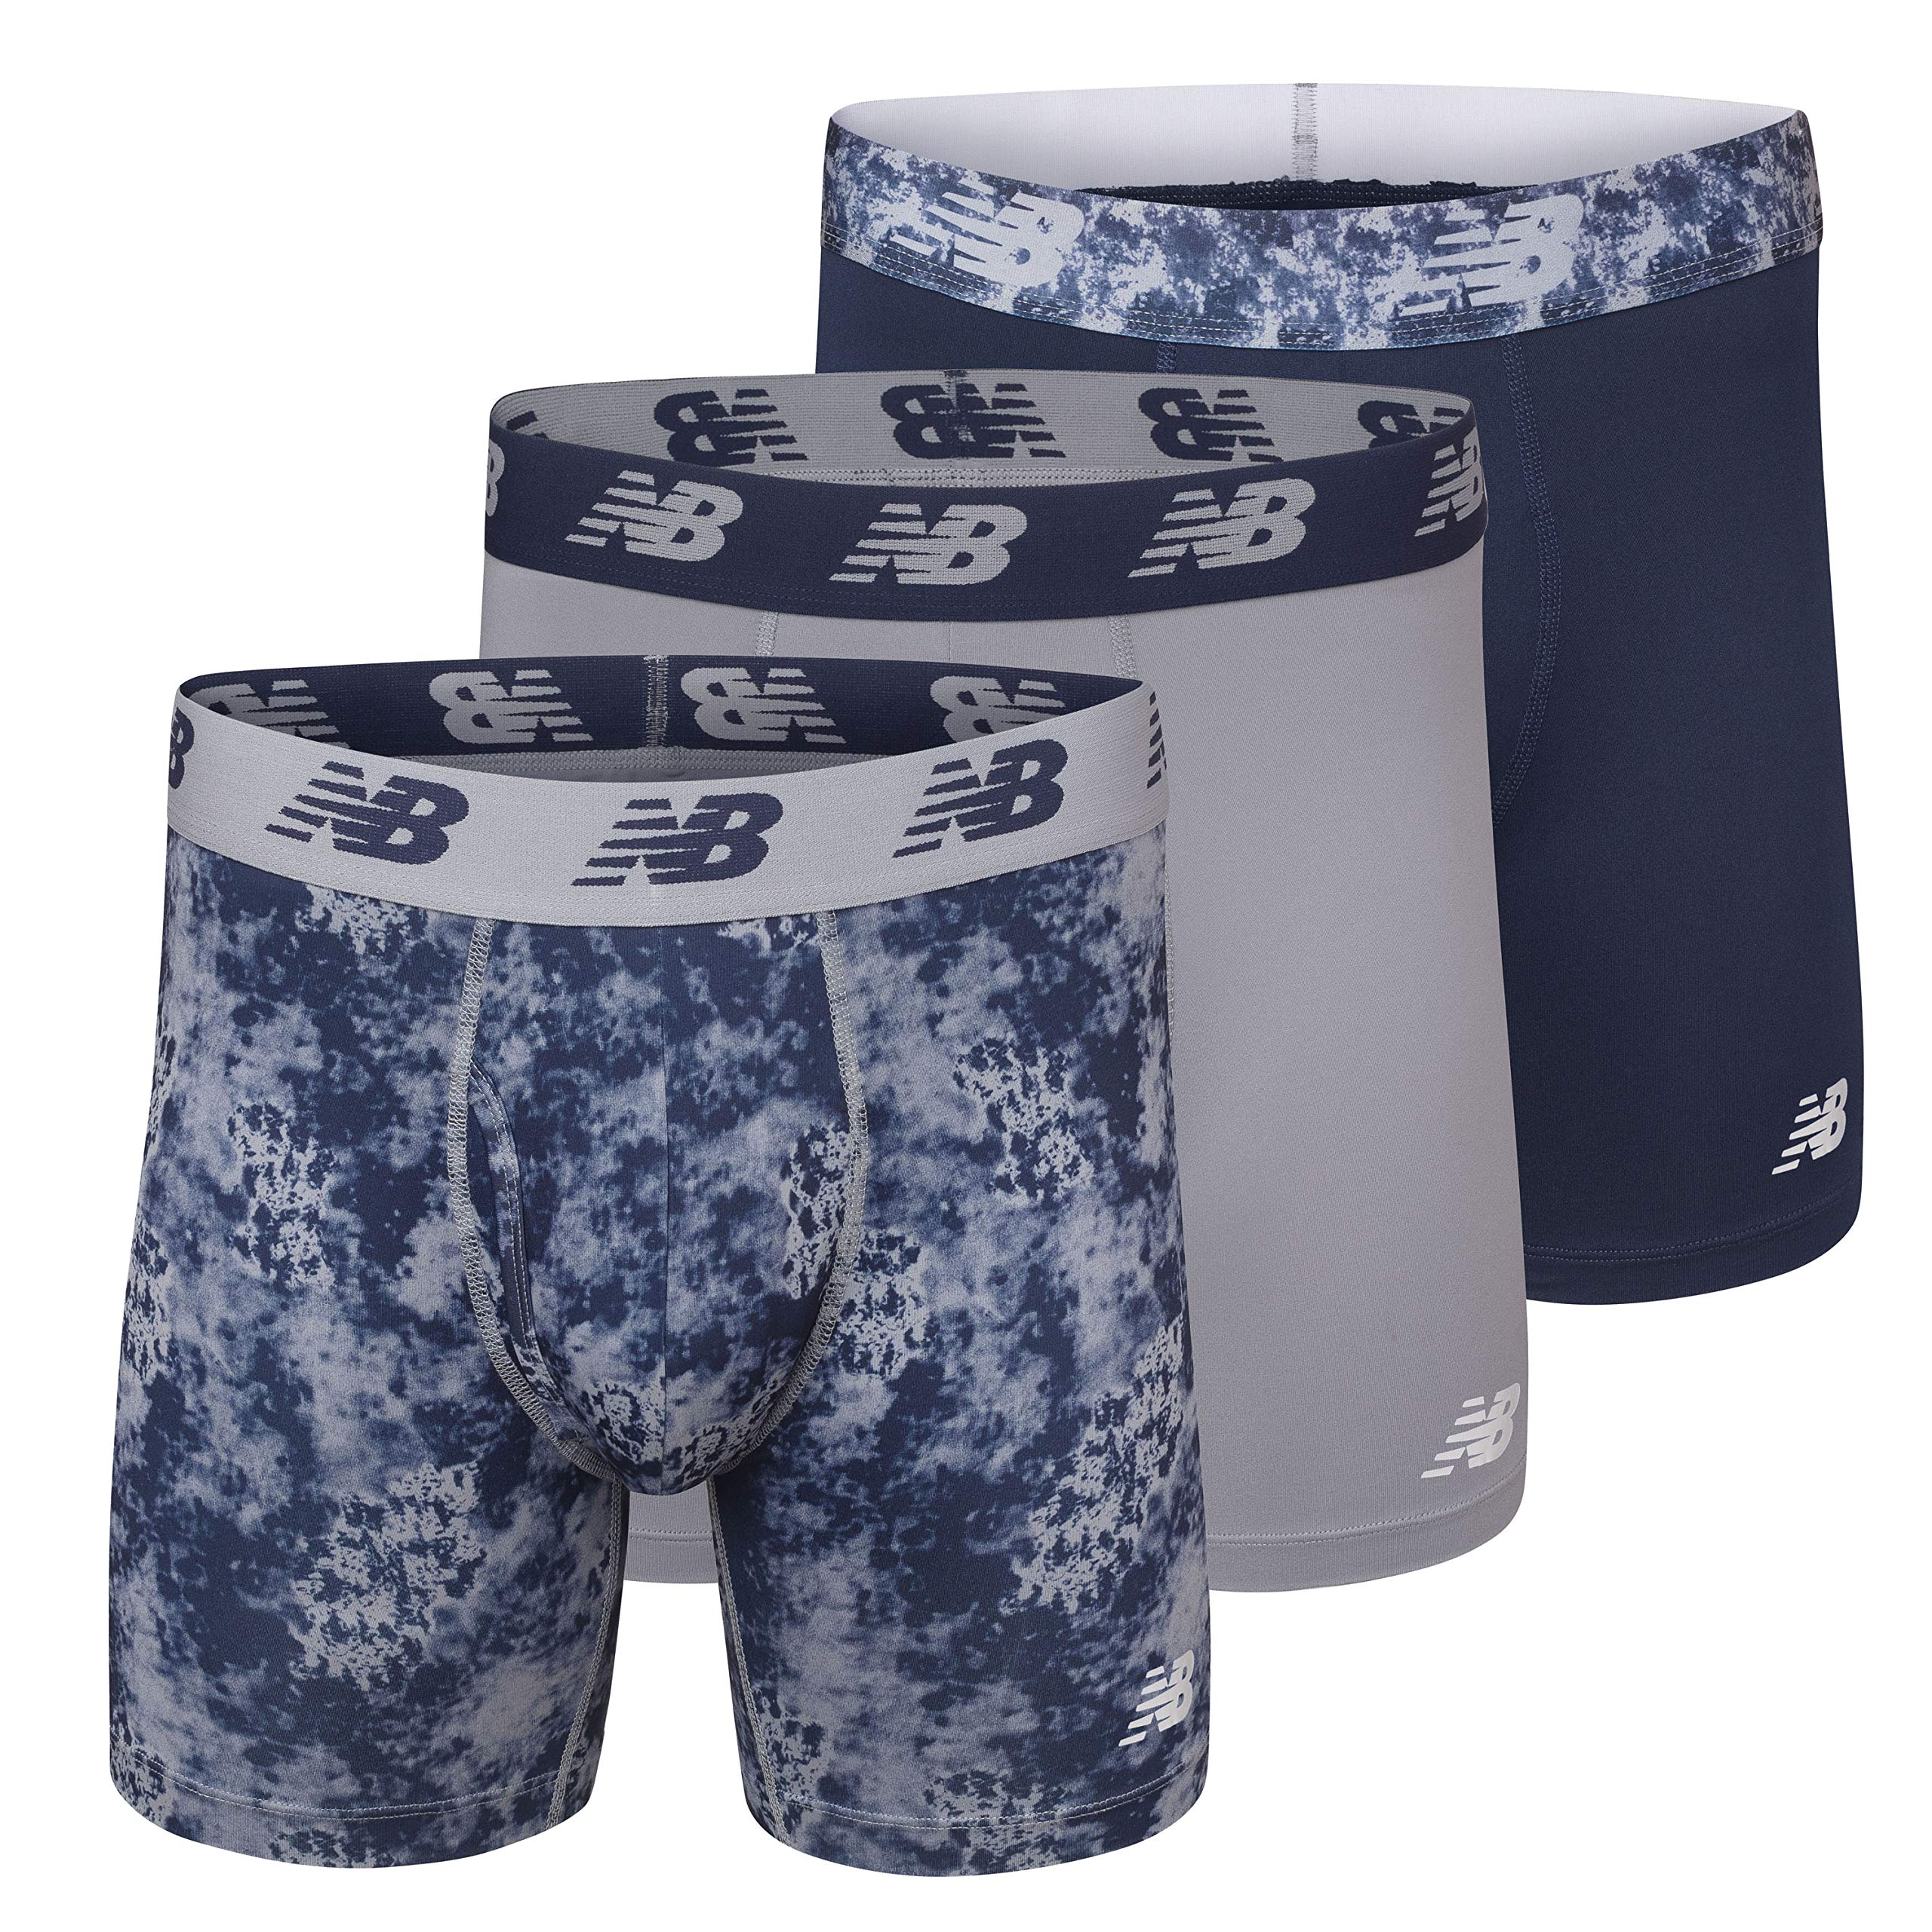 New Balance Men's 6'' Boxer Brief Fly Front with Pouch, 3-Pack,Print/Steel/Pigment, Large (36''-38'') by New Balance